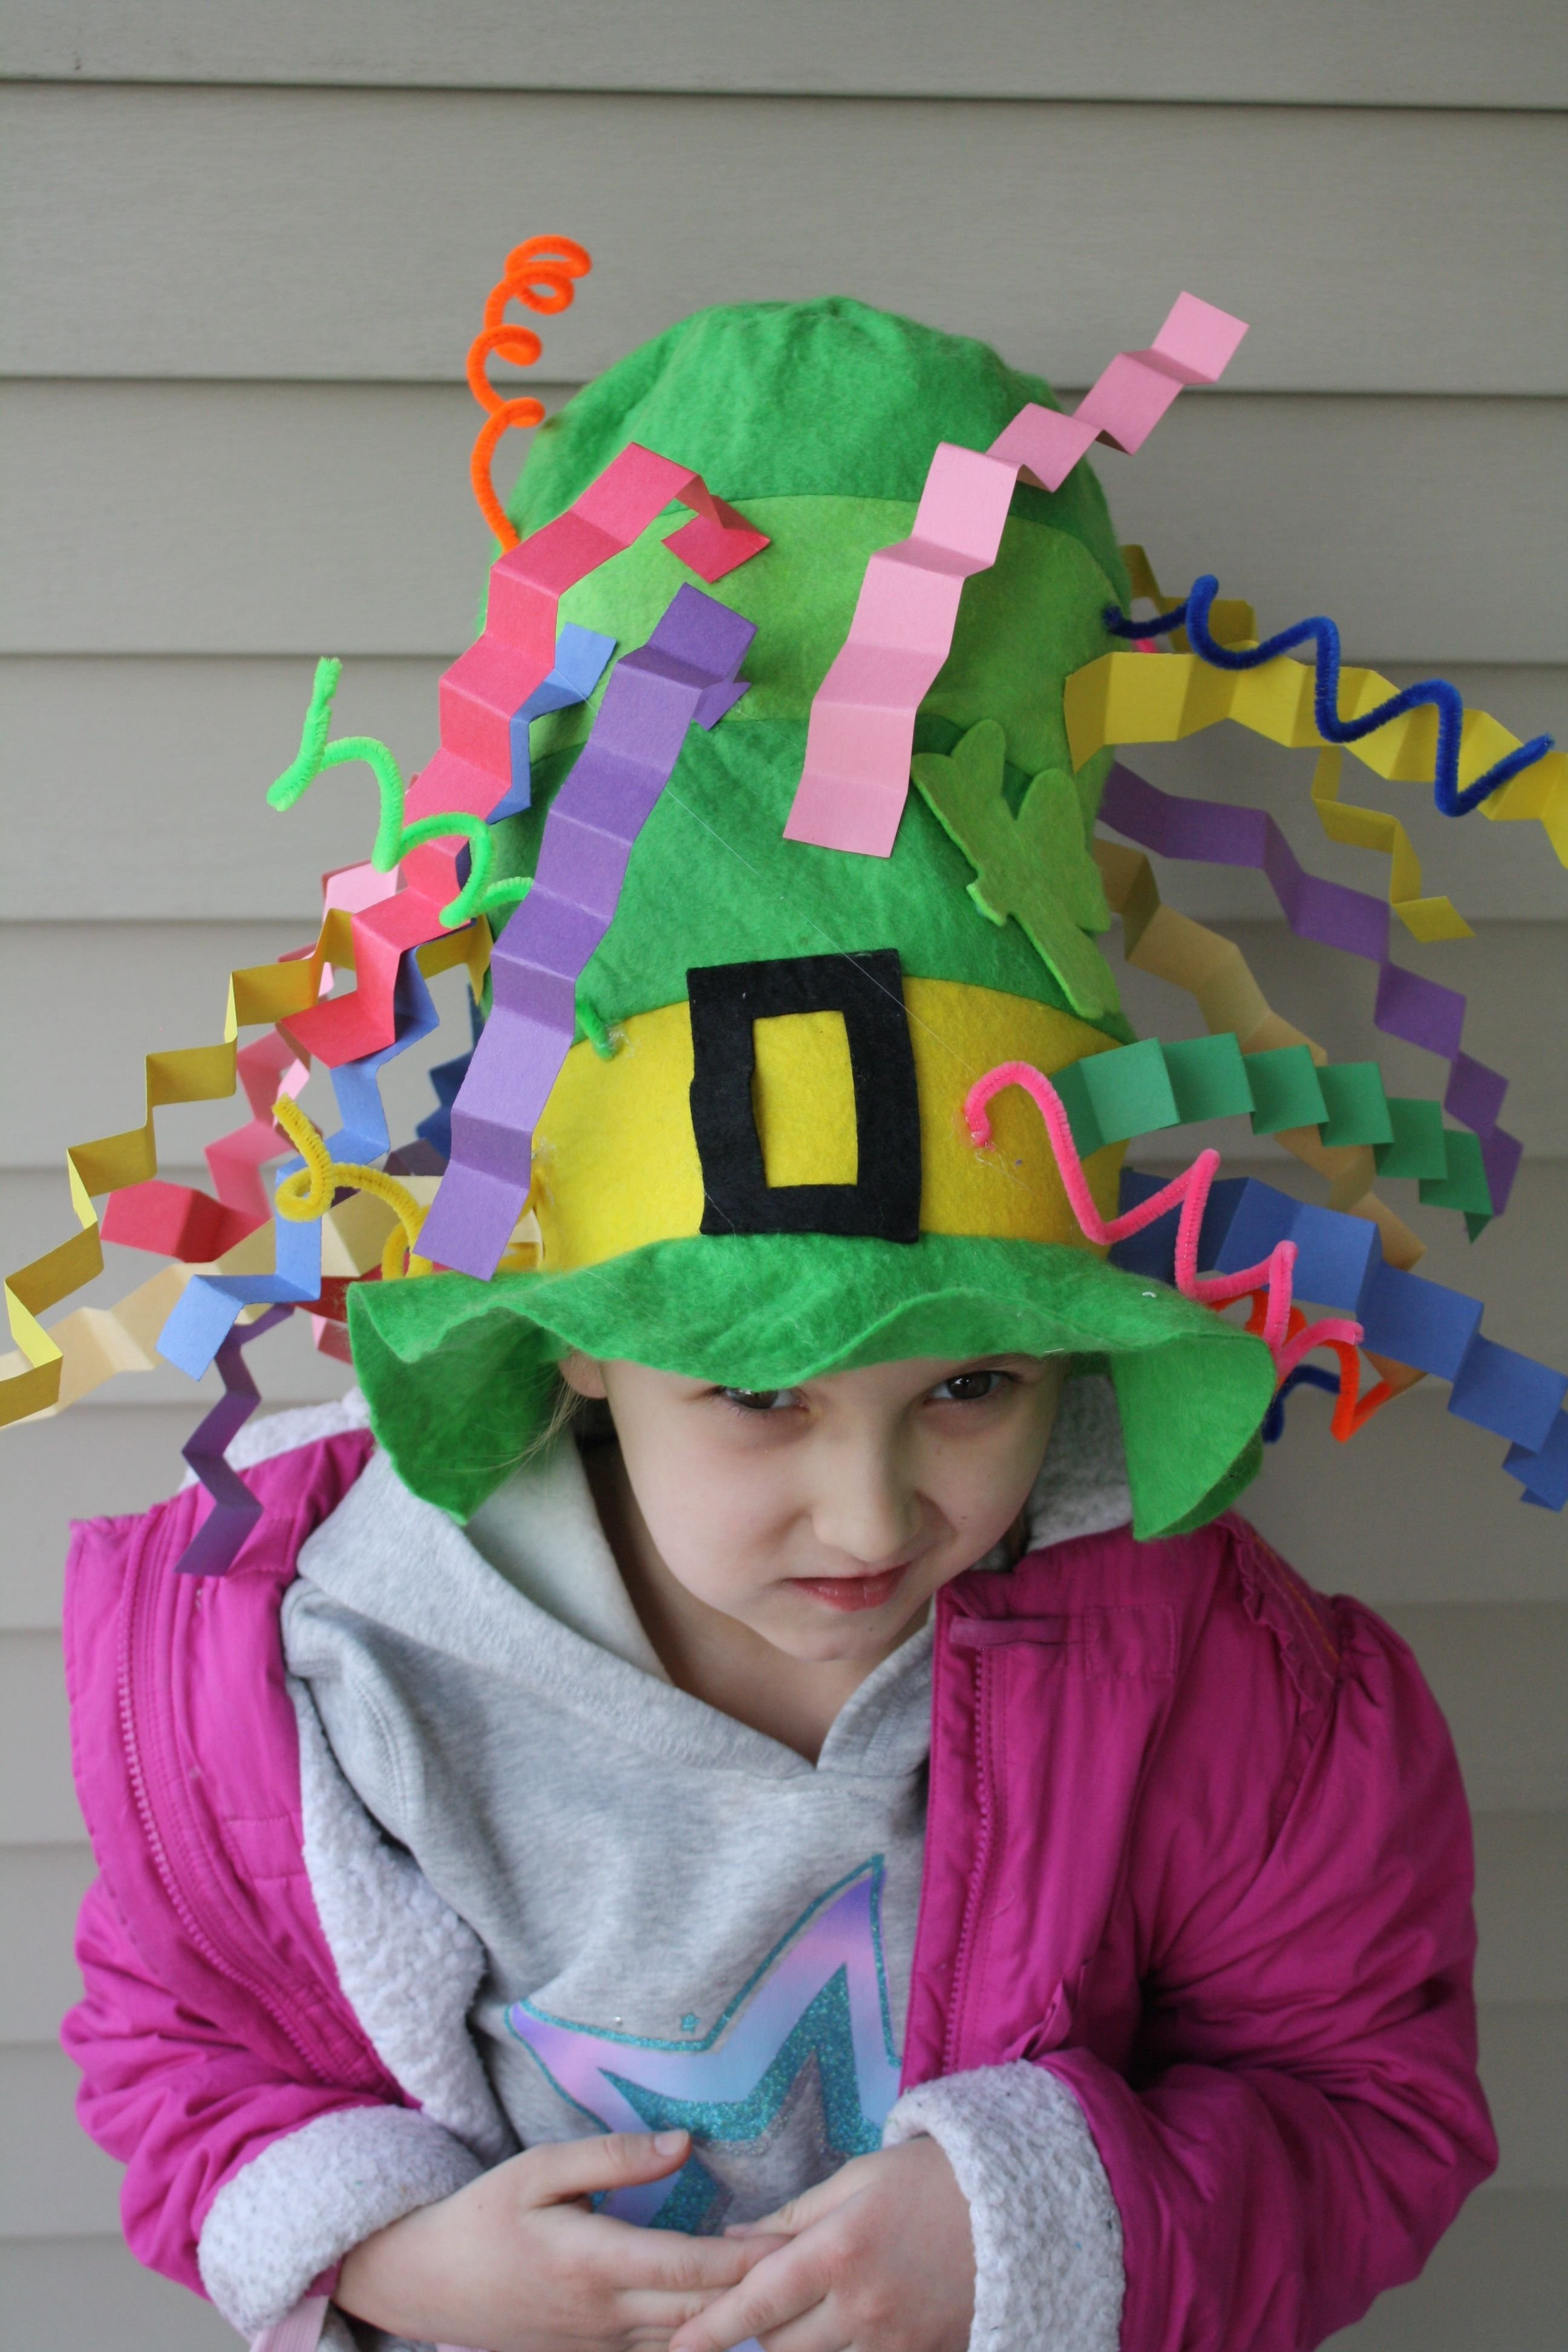 Ideas For Kids Bedroom: 10 Great Crazy Hat Day Ideas For Kids 2019